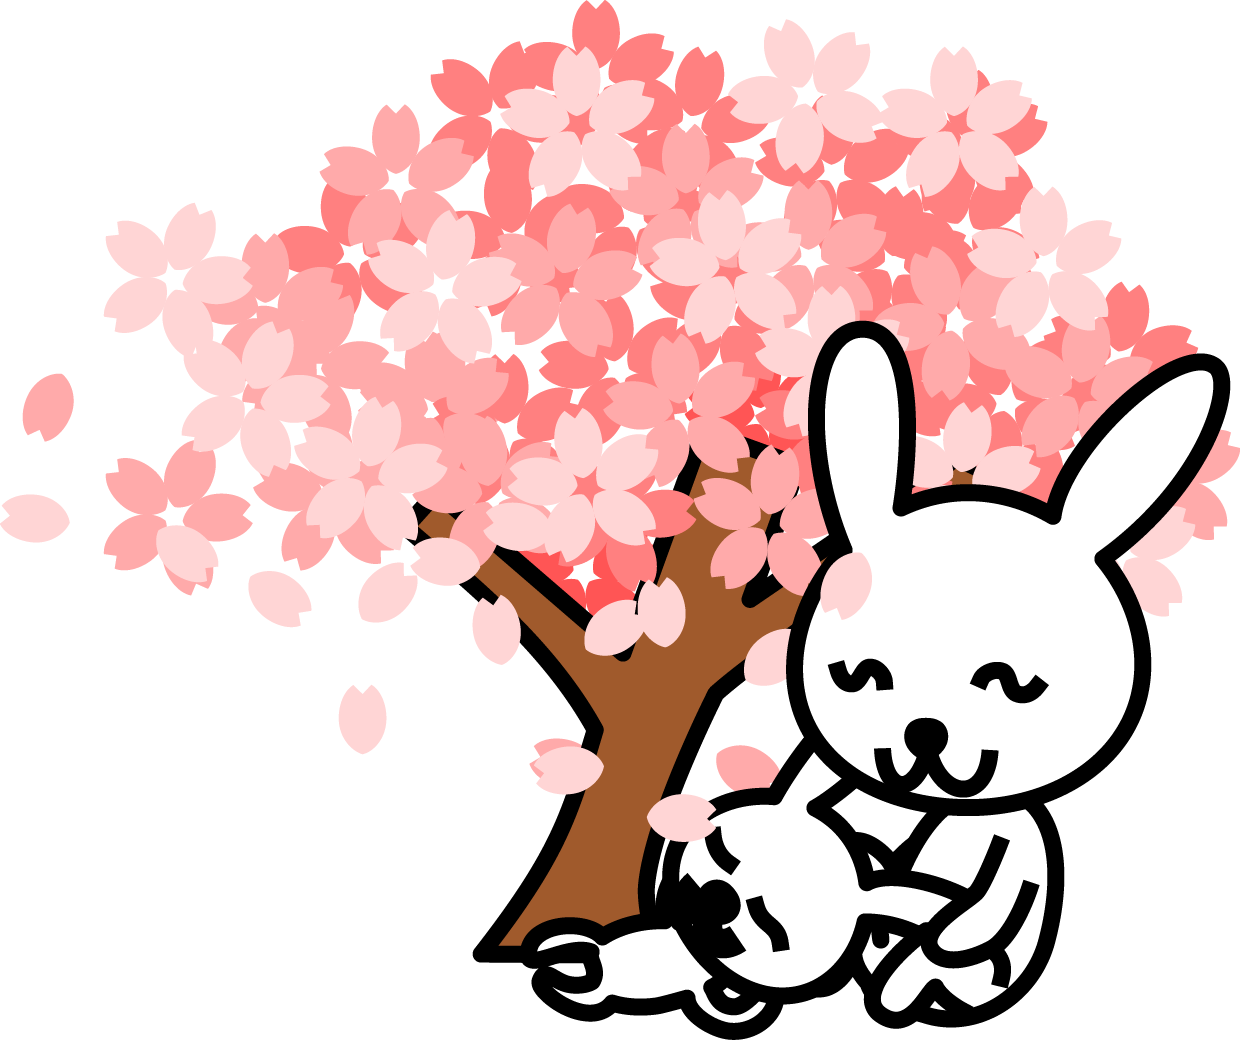 Sakura flower clipart graphic freeuse stock Cherry Blossom Clipart at GetDrawings.com | Free for personal use ... graphic freeuse stock